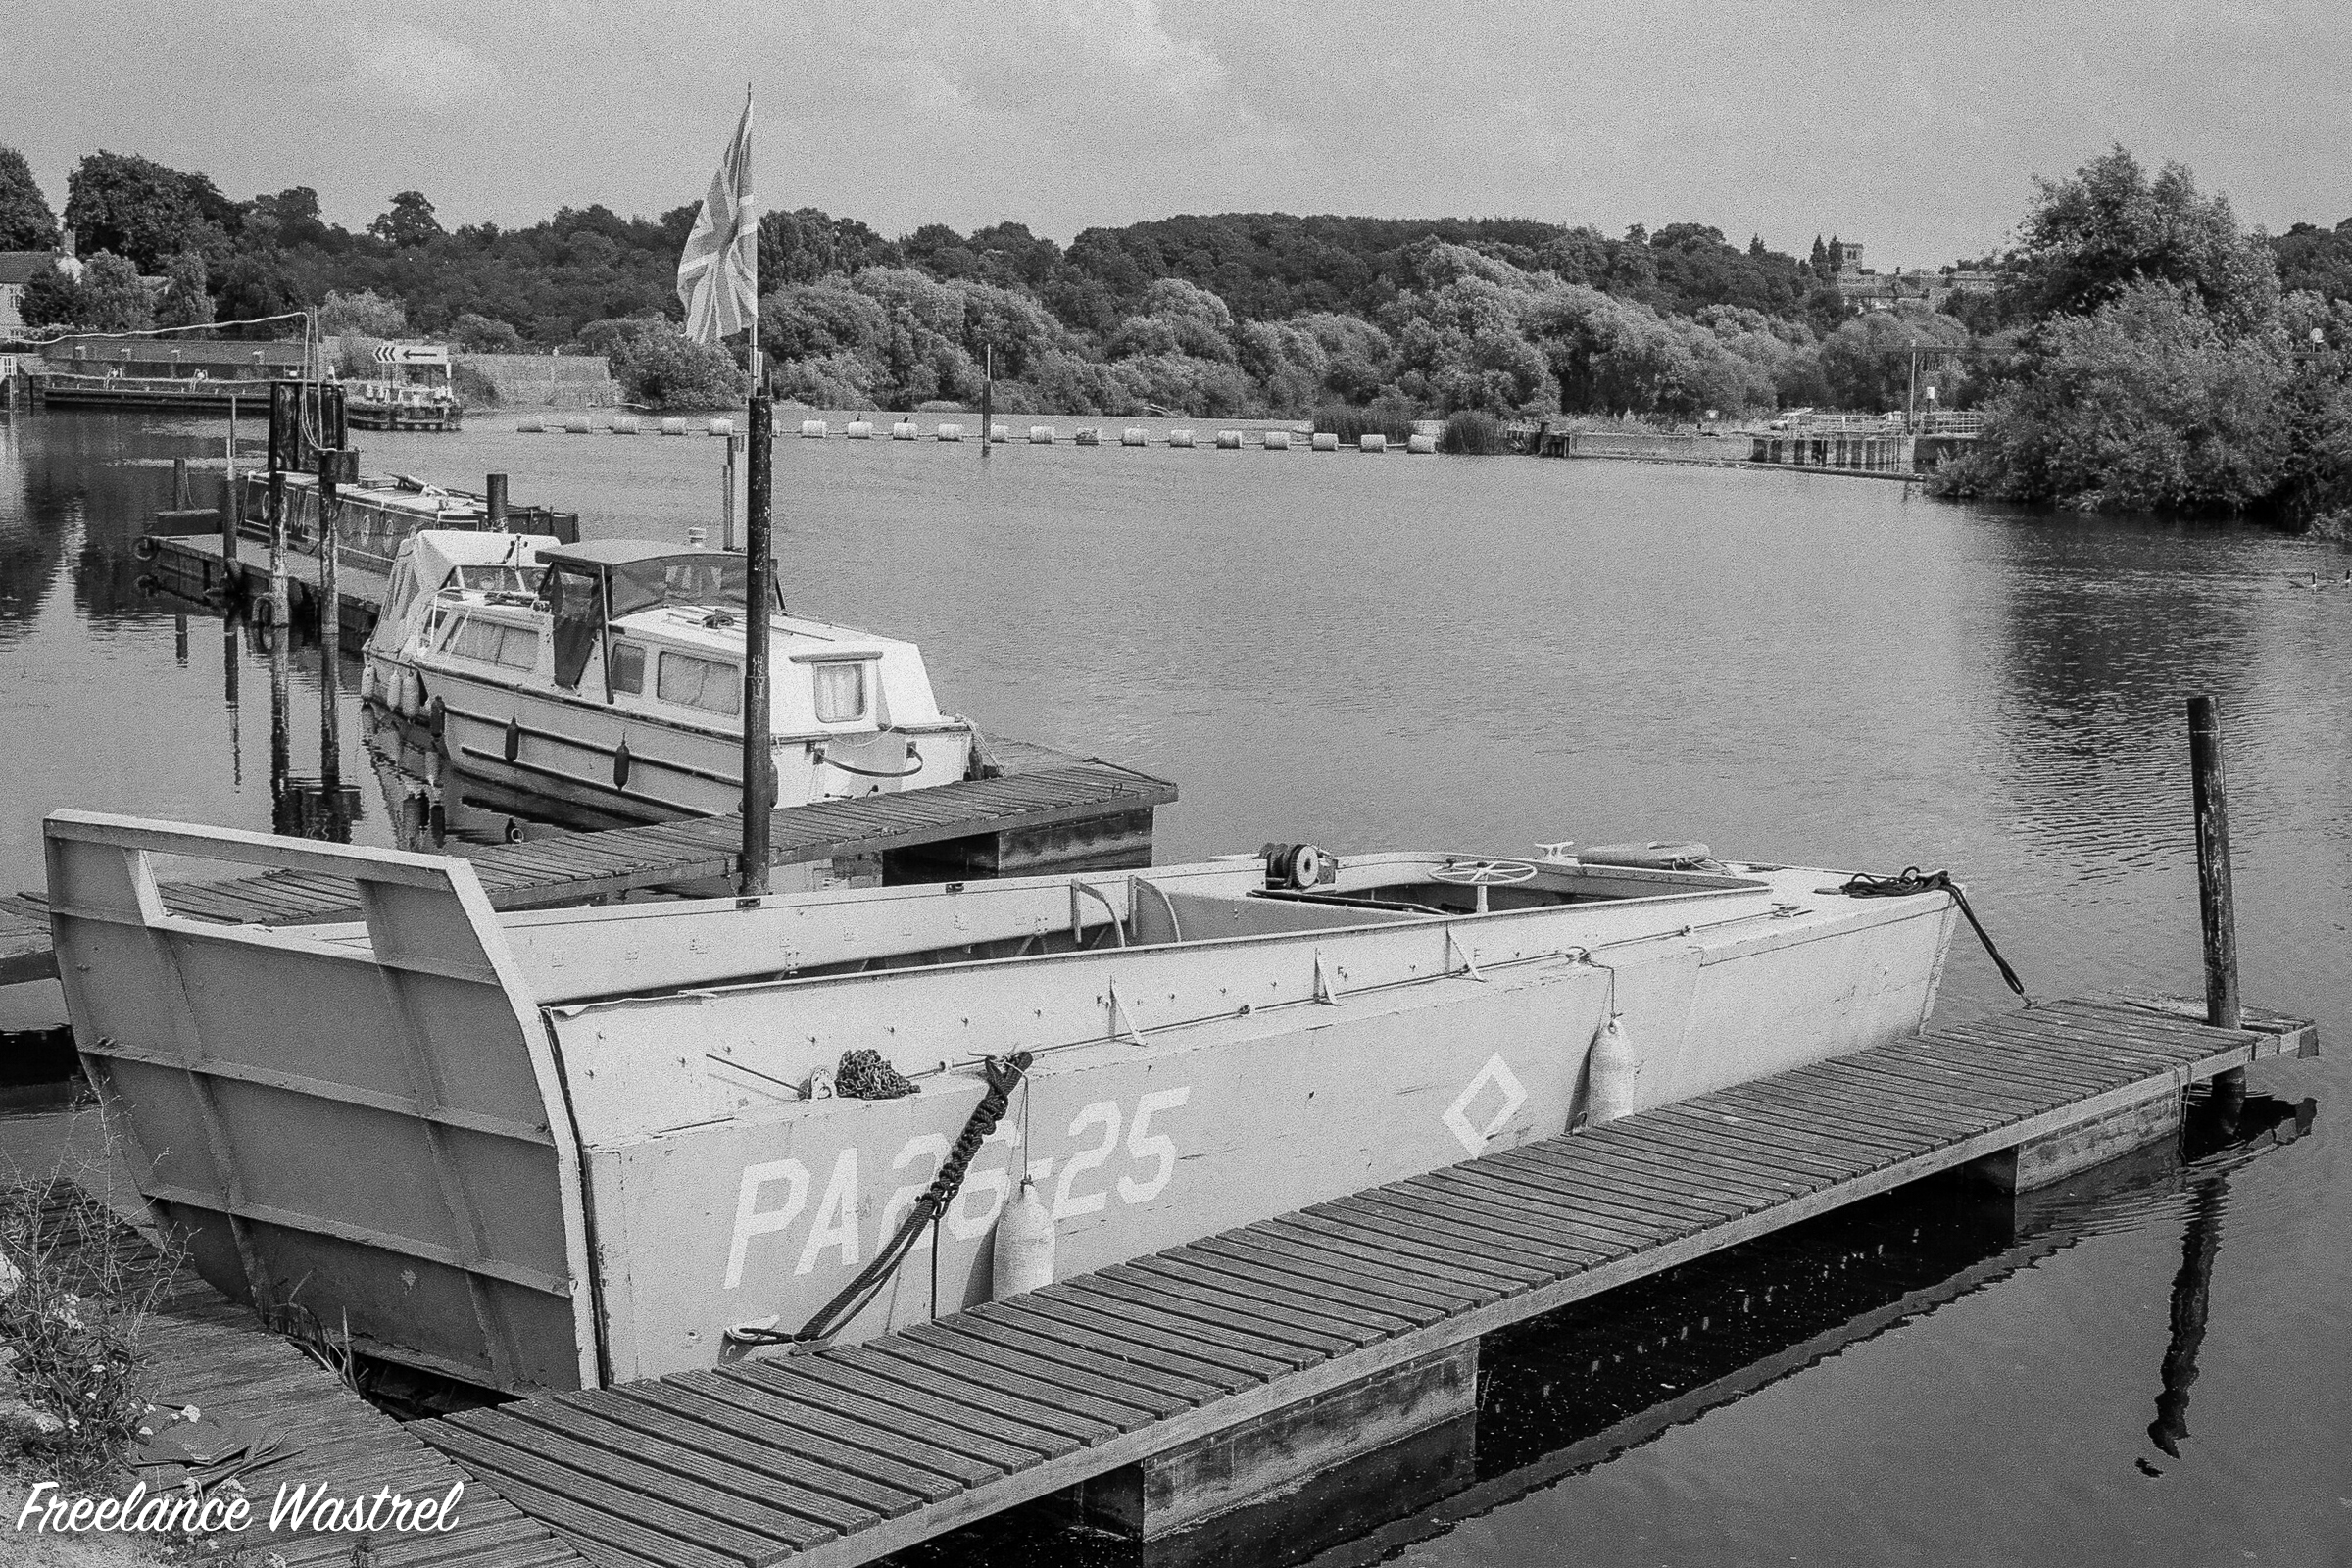 Landing Craft, Vehicle, Personnel (LCVP) PA26-25, July 2018